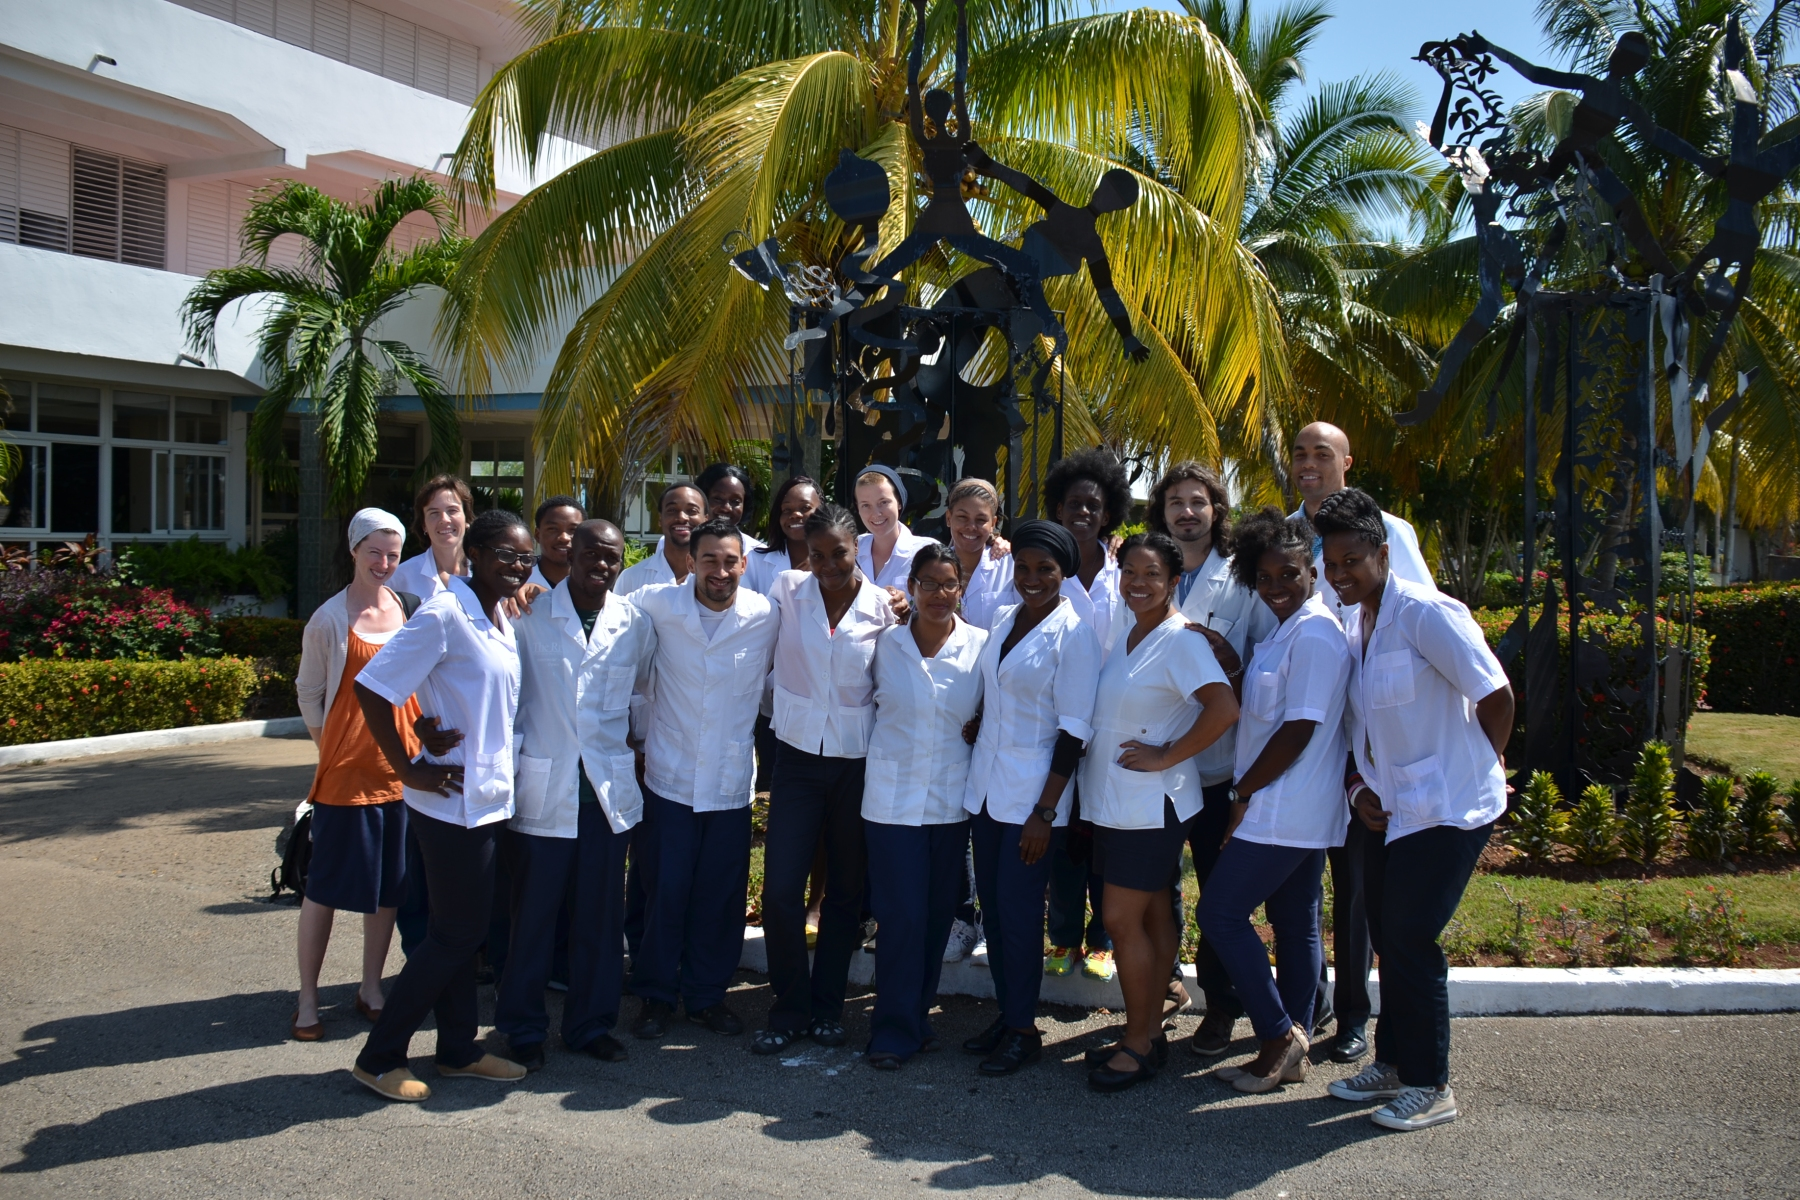 US Students studying at the Latin American School of Medicine in Cuba